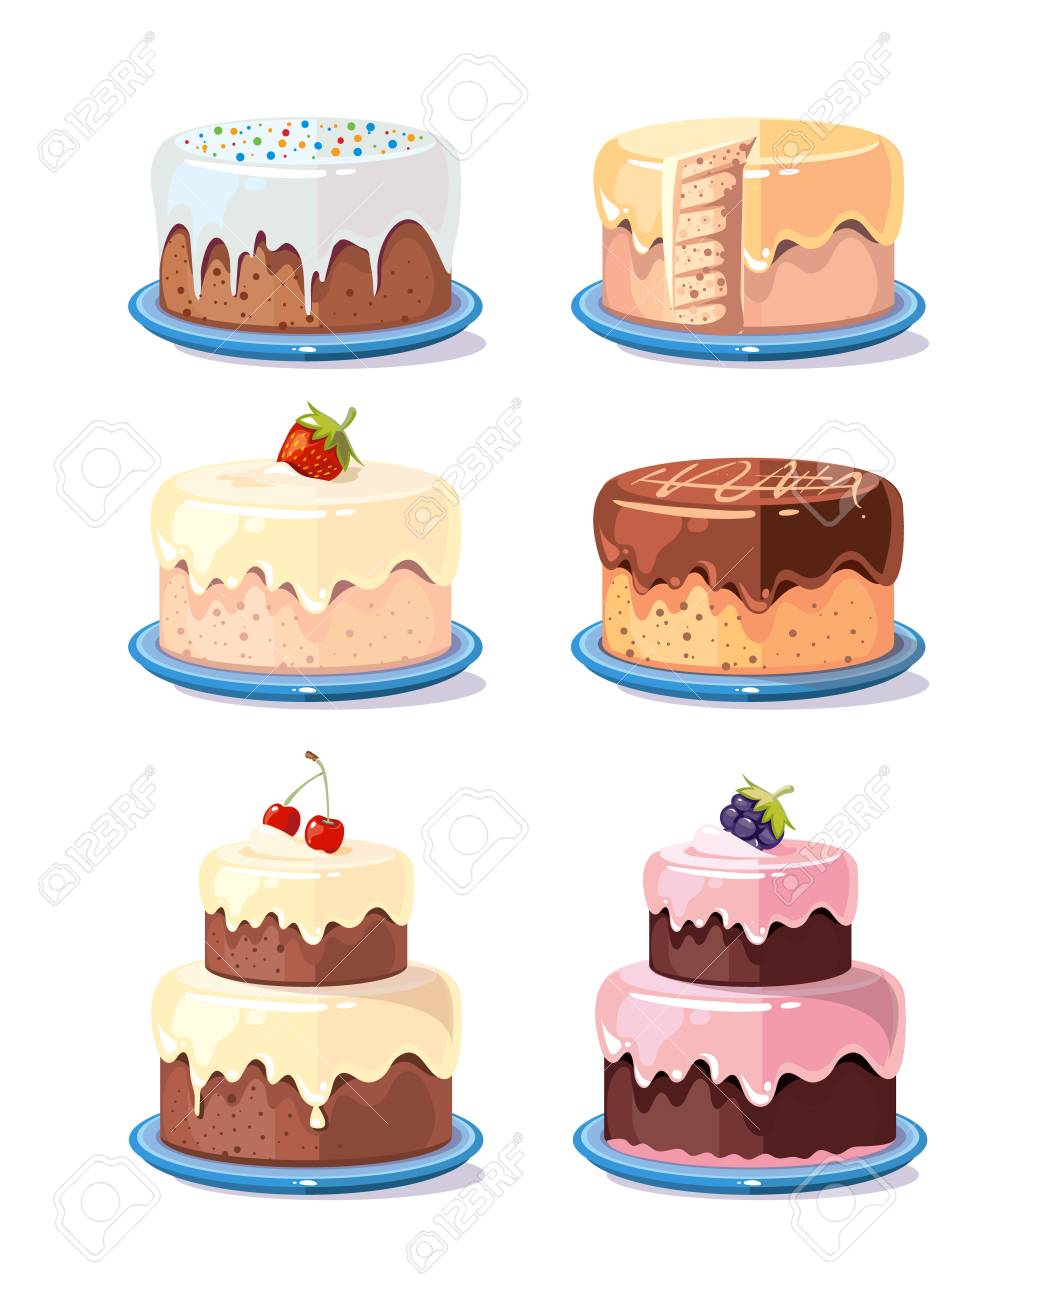 Cream Cake Tasty Cakes Vector Set In Cartoon Style Birthday With Chocolate And Fruits